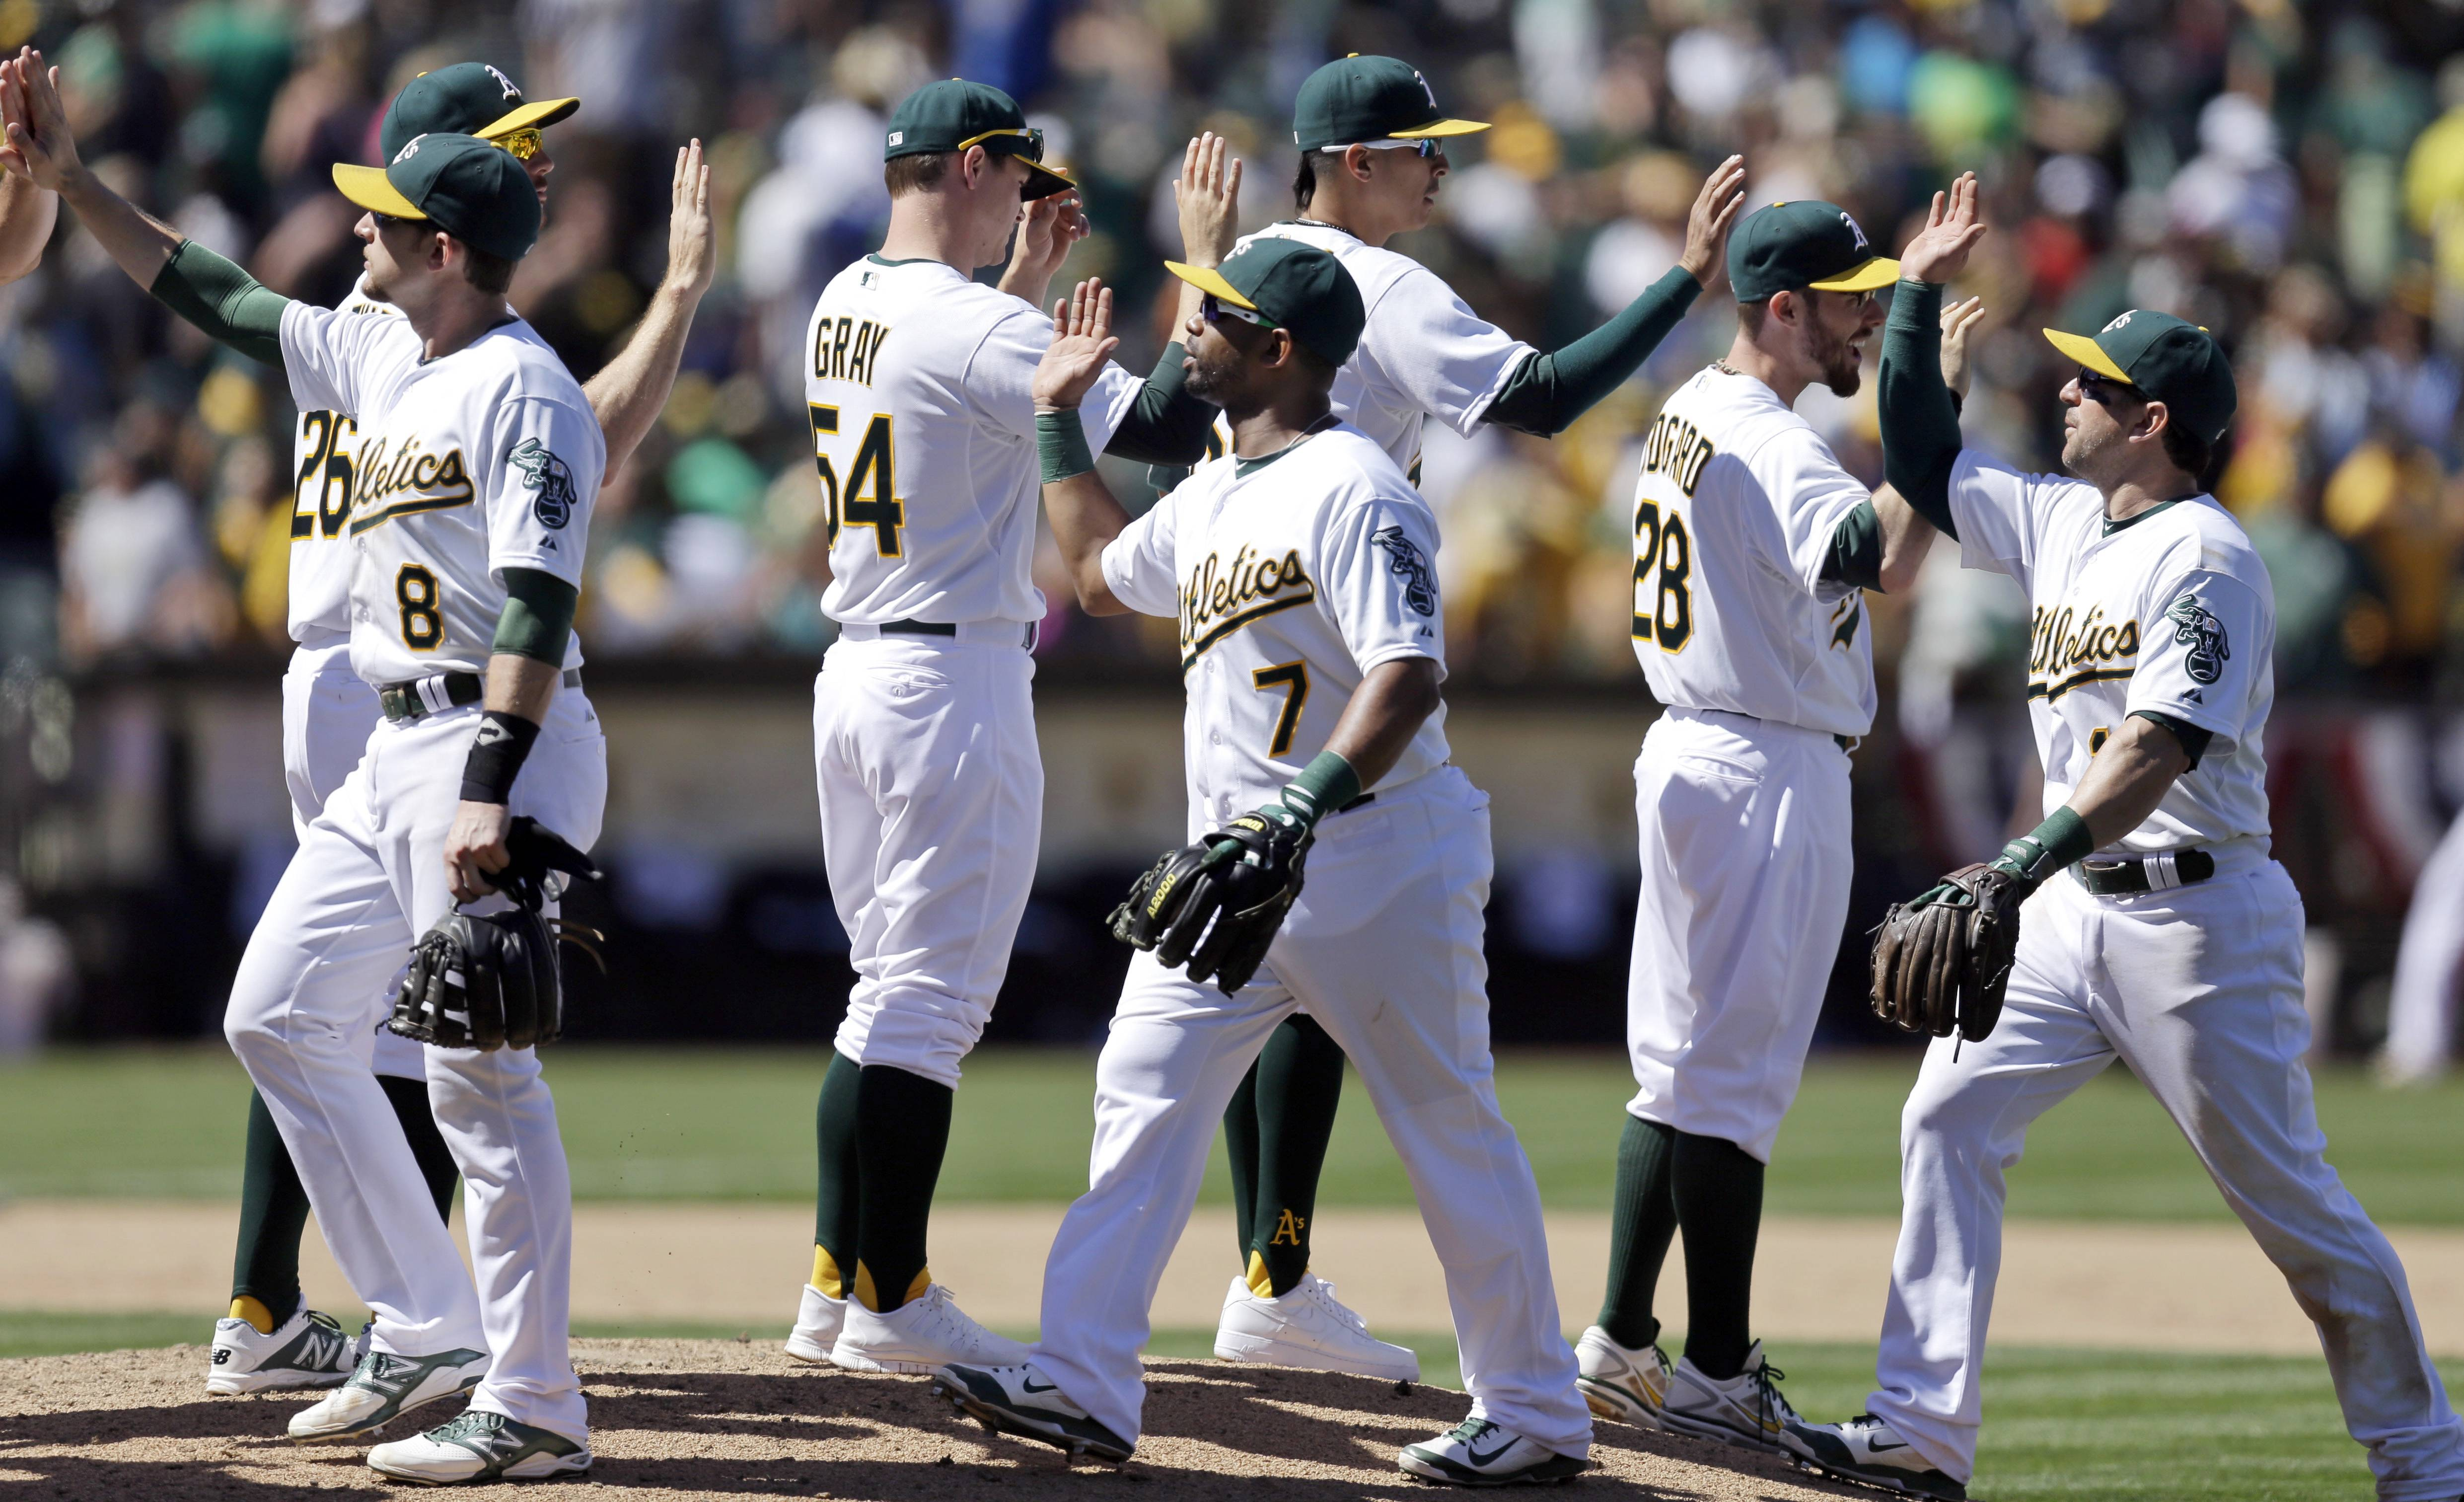 FILE - In this July 6, 2014, file photo, Oakland Athletics players including Jed Lowrie (8), Sonny Gray (54) and Alberto Callaspo (7) celebrate their four game sweep of the Toronto Blue Jays after a baseball game in Oakland, Calif. The small-budget Athletics are baseball's best team at the break in a division featuring some of the highest-paid stars. The Giants are right in the chase for the NL West crown despite some recent stumbles. It's only mid-July and there is already talk of a special October and, perhaps, a Bay Bridge Series with far more significance come fall.